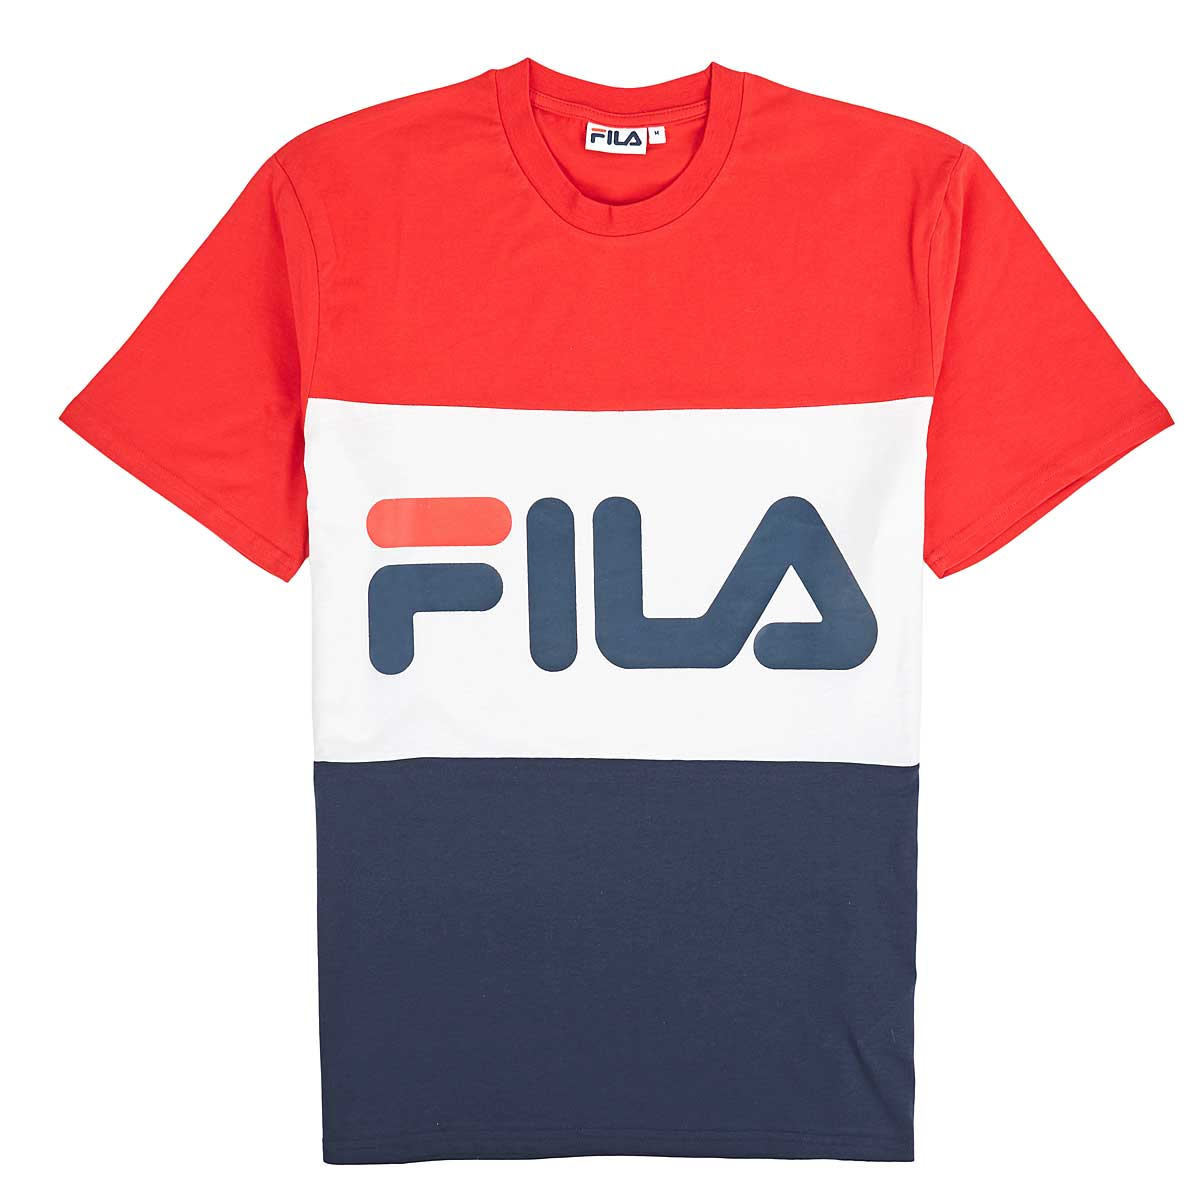 Fila T-shirts cheap fila t shirt GNVBLVY